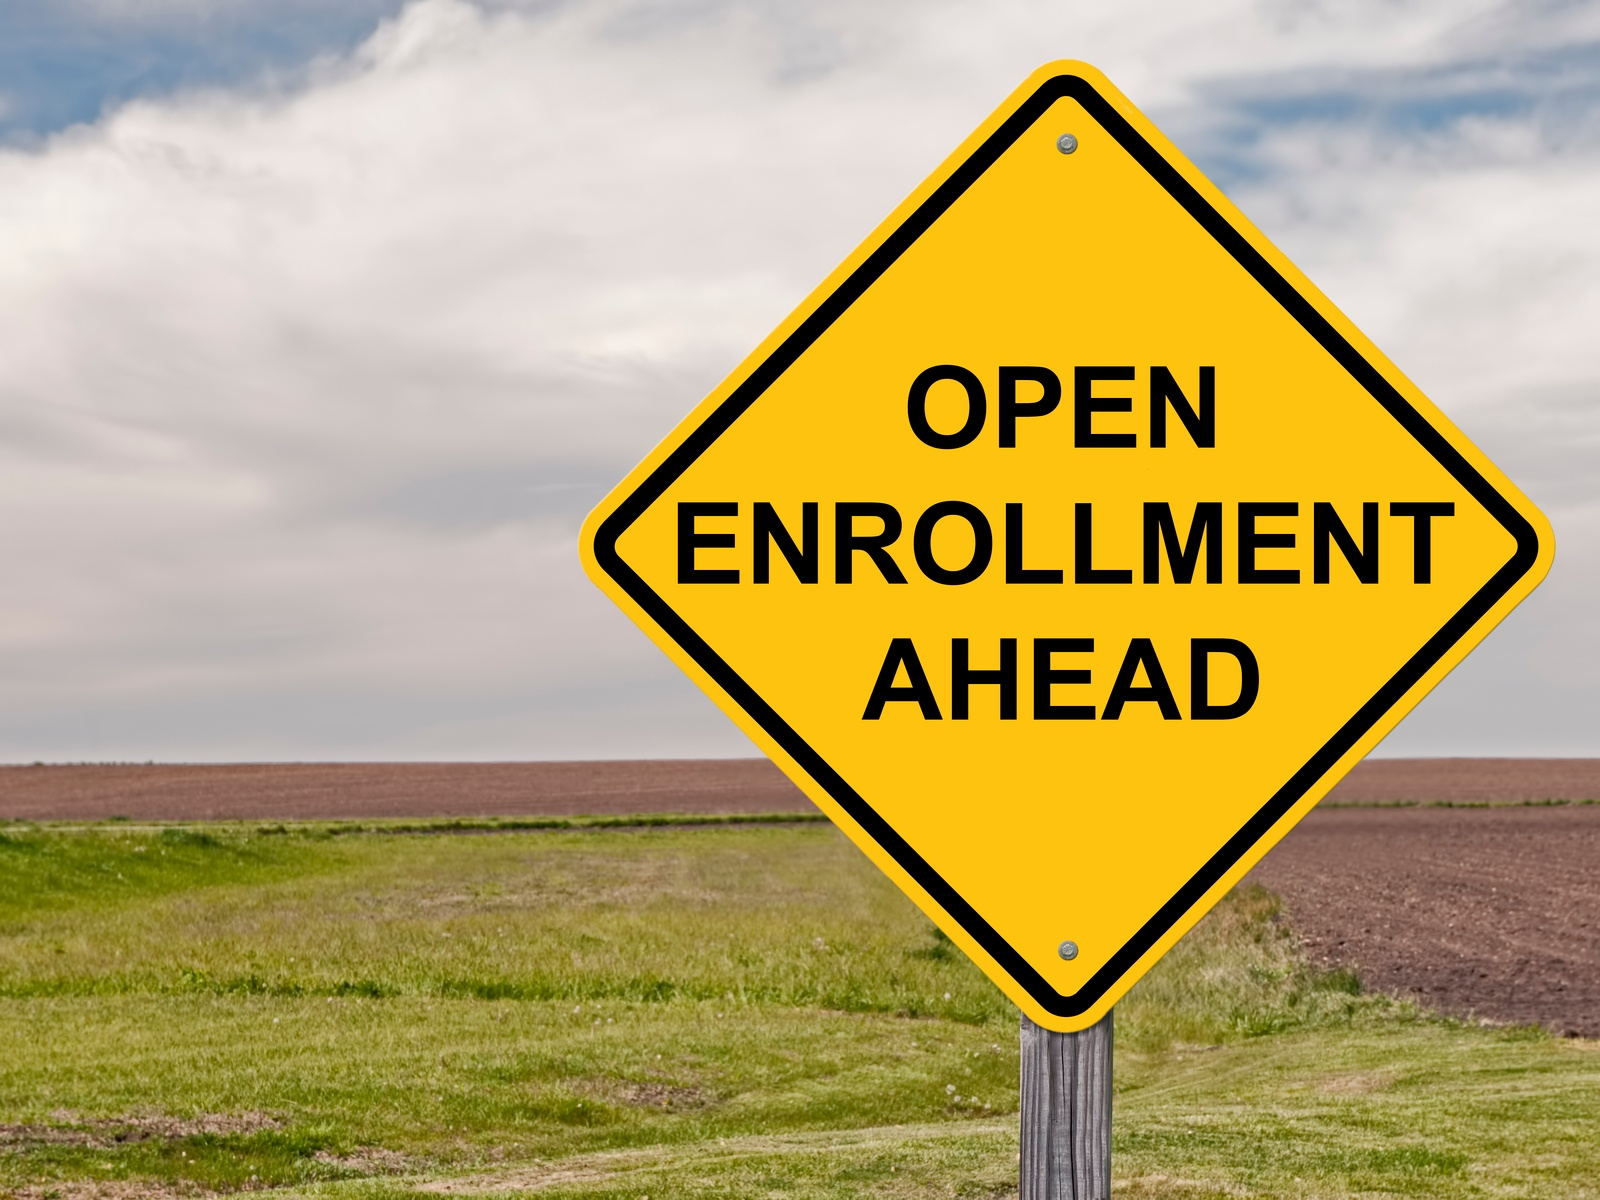 3 Ways To Spice Up Employee Benefits Annual Open Enrollment Meetings - Featured Image